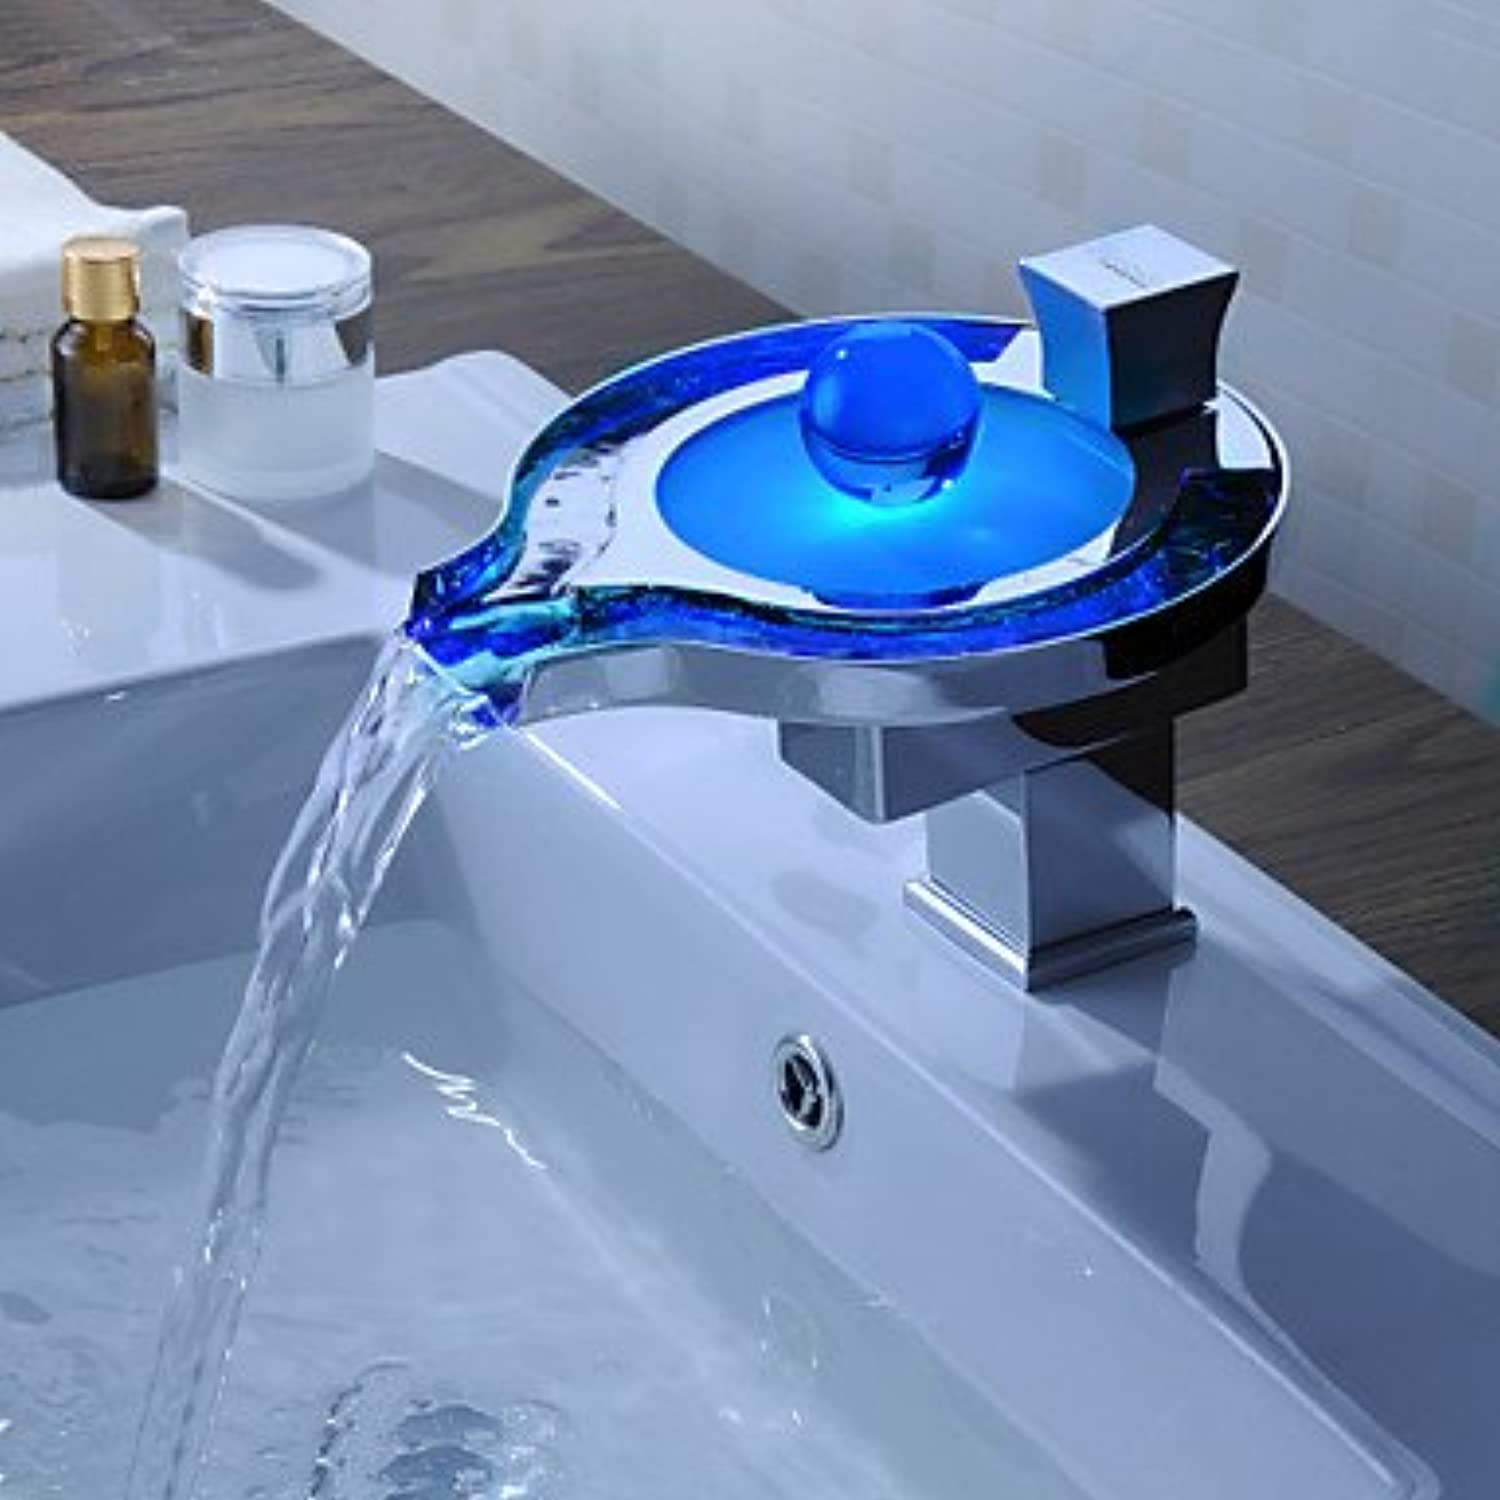 Furesnts Modern home kitchen and bathroom faucet color Changing LED Waterfall bathroom sink taps,(Standard G 1 2 universal hose ports)